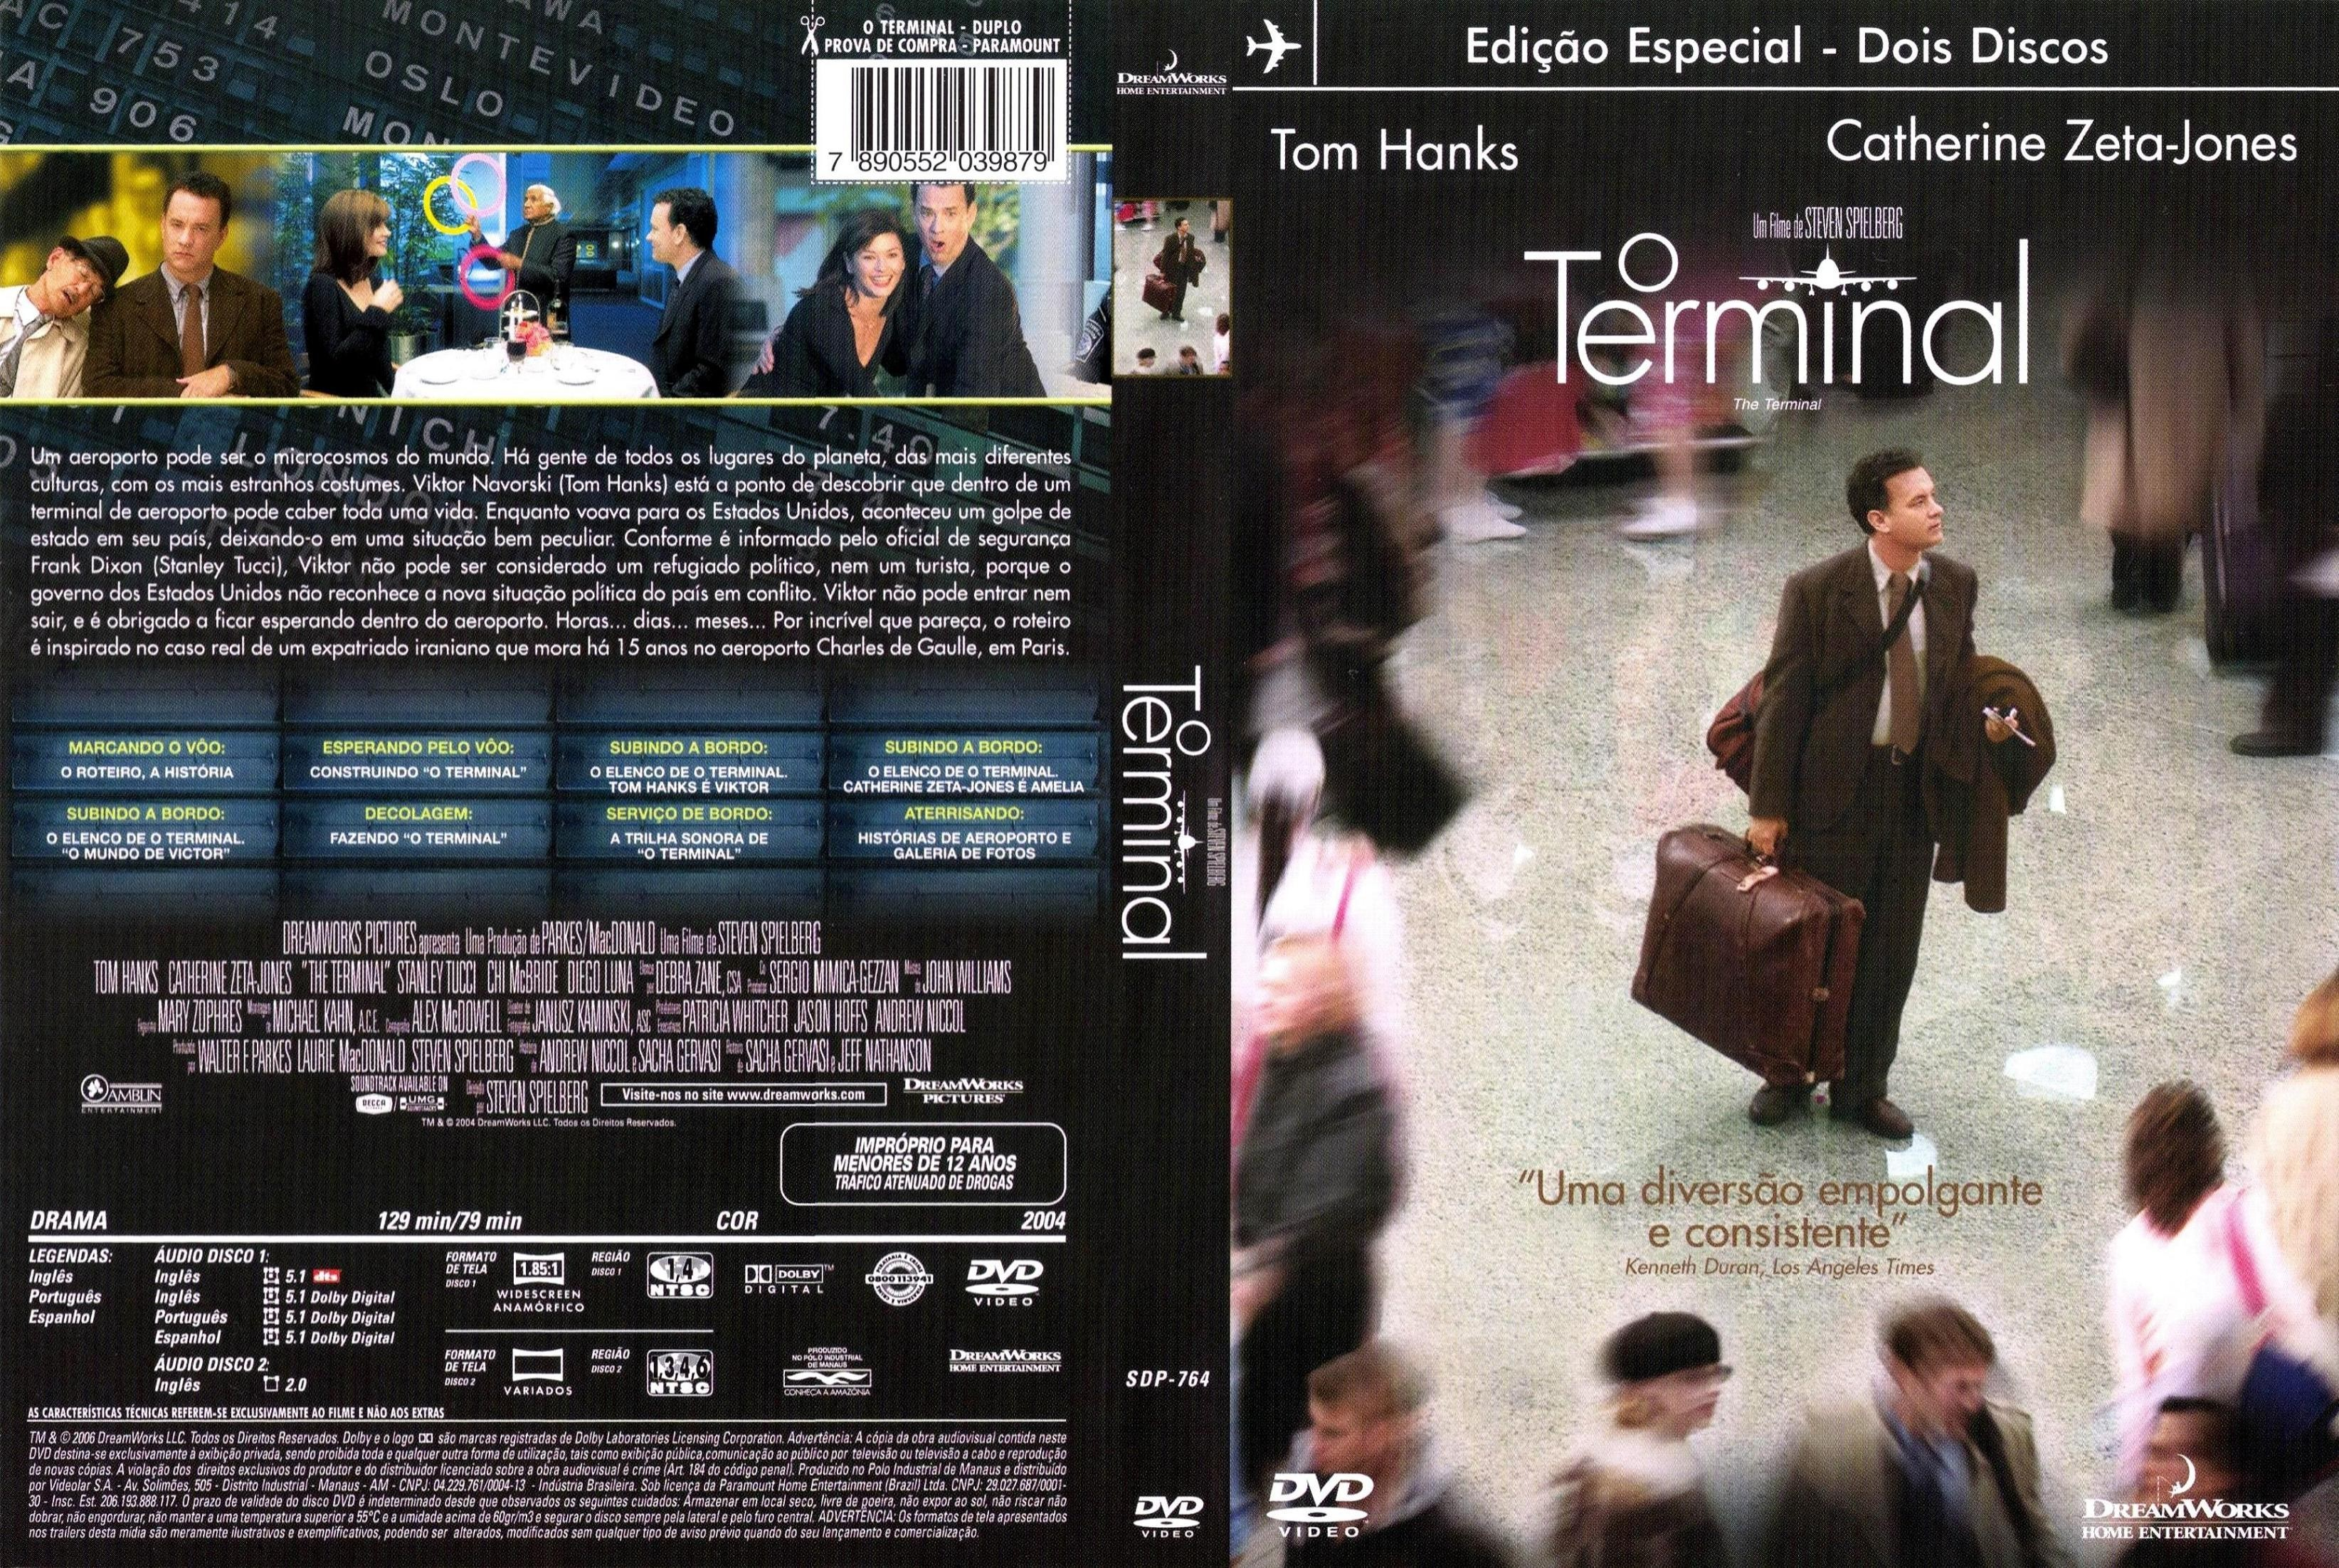 DVD LACRADO DUPLO O TERMINAL TOM HANKS - AUDIO EM PORTUGUES